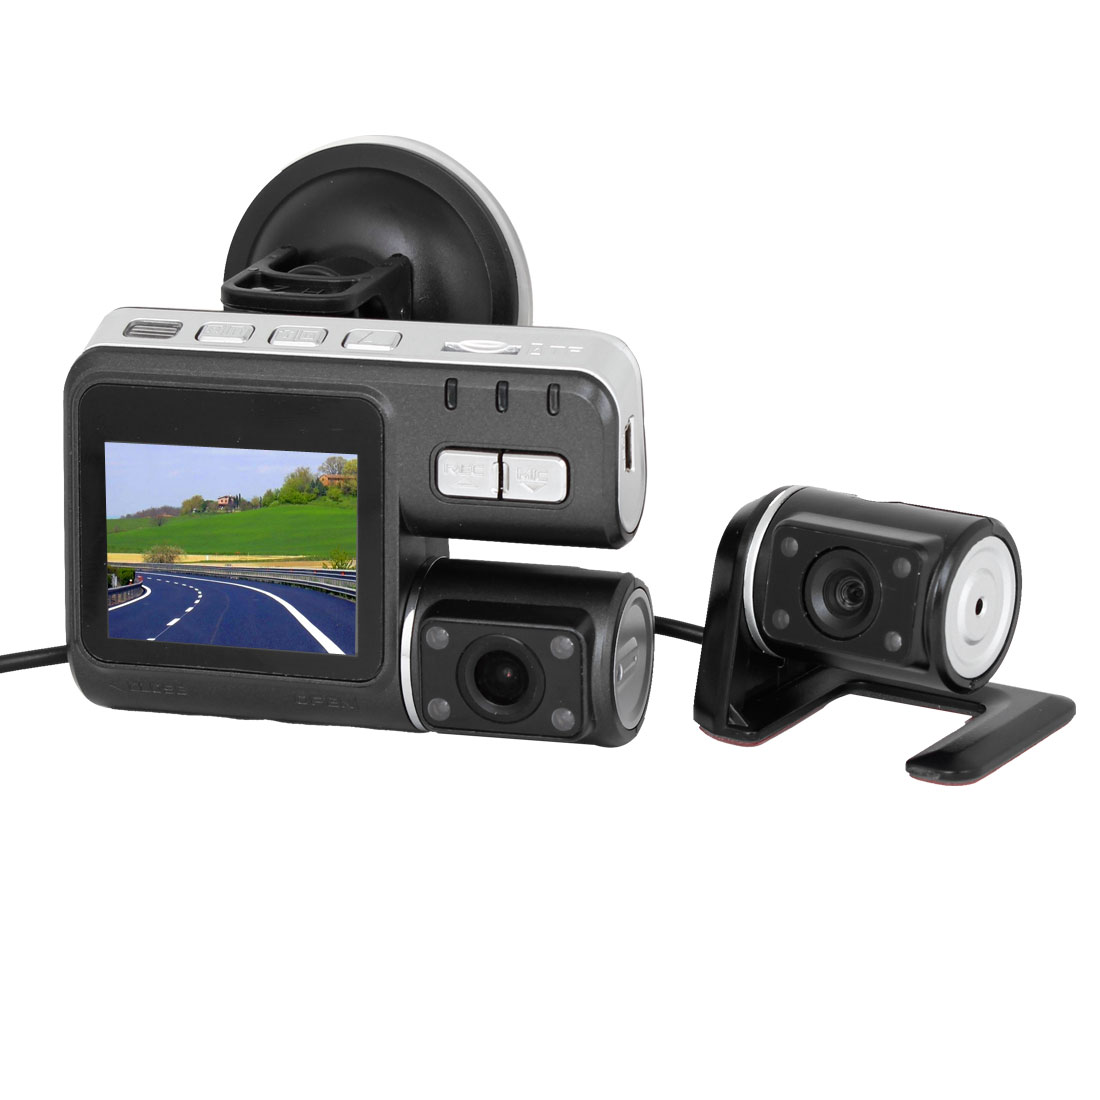 "HD 720P Vehicle DVR Camera 2"" LCD 120 Degree Angle Dual Camera Video Recorder"